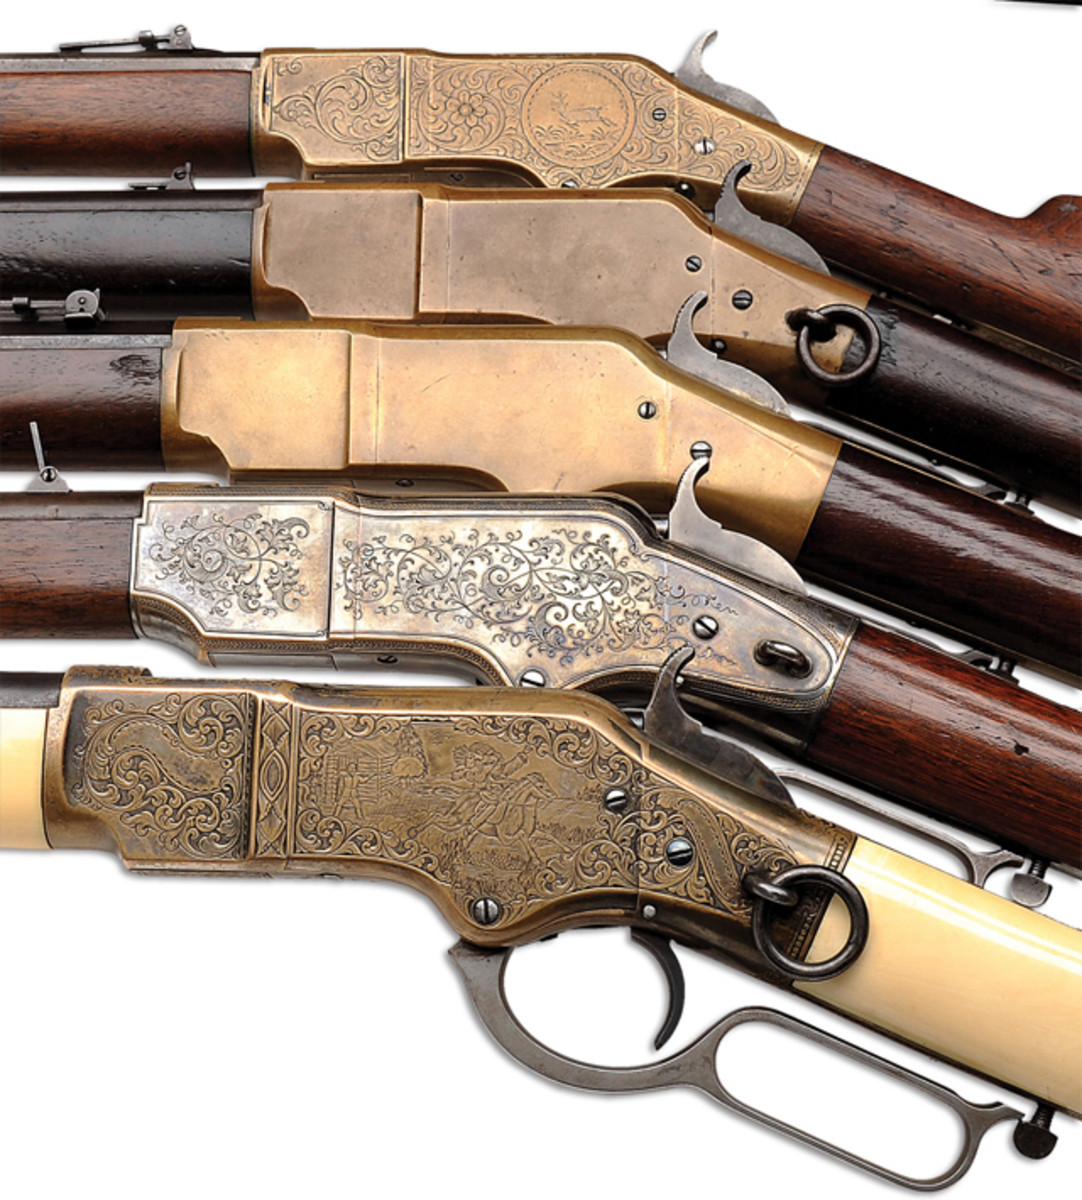 Many Fine Investment Quality Win 1866 Rifles & Carbines will be offered in March.